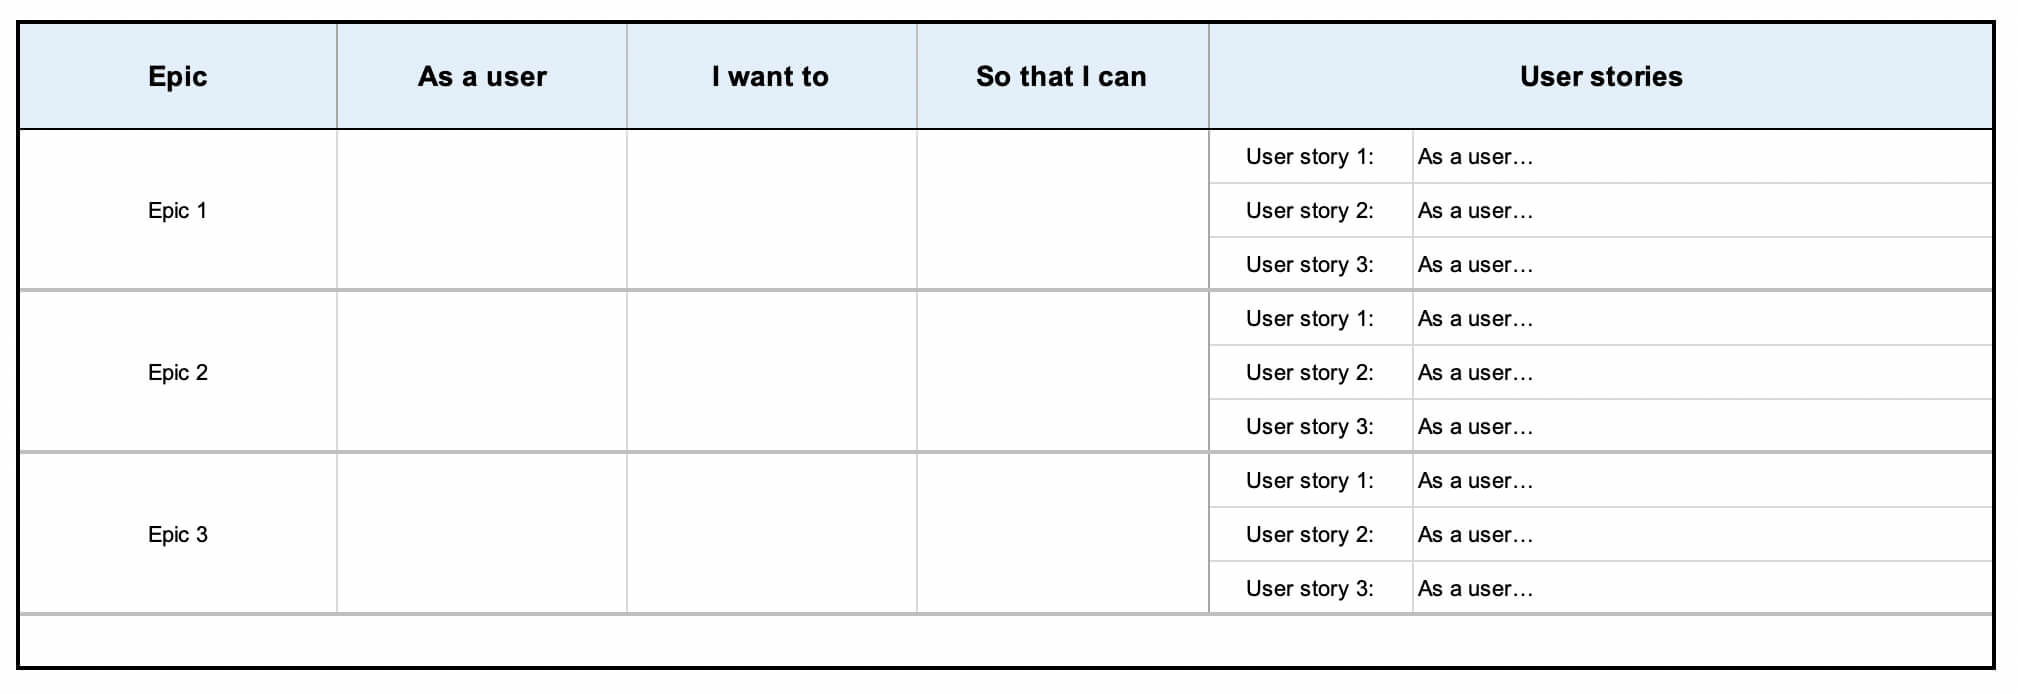 User Story Template Examples For Product Managers | Aha! Within User Story Word Template